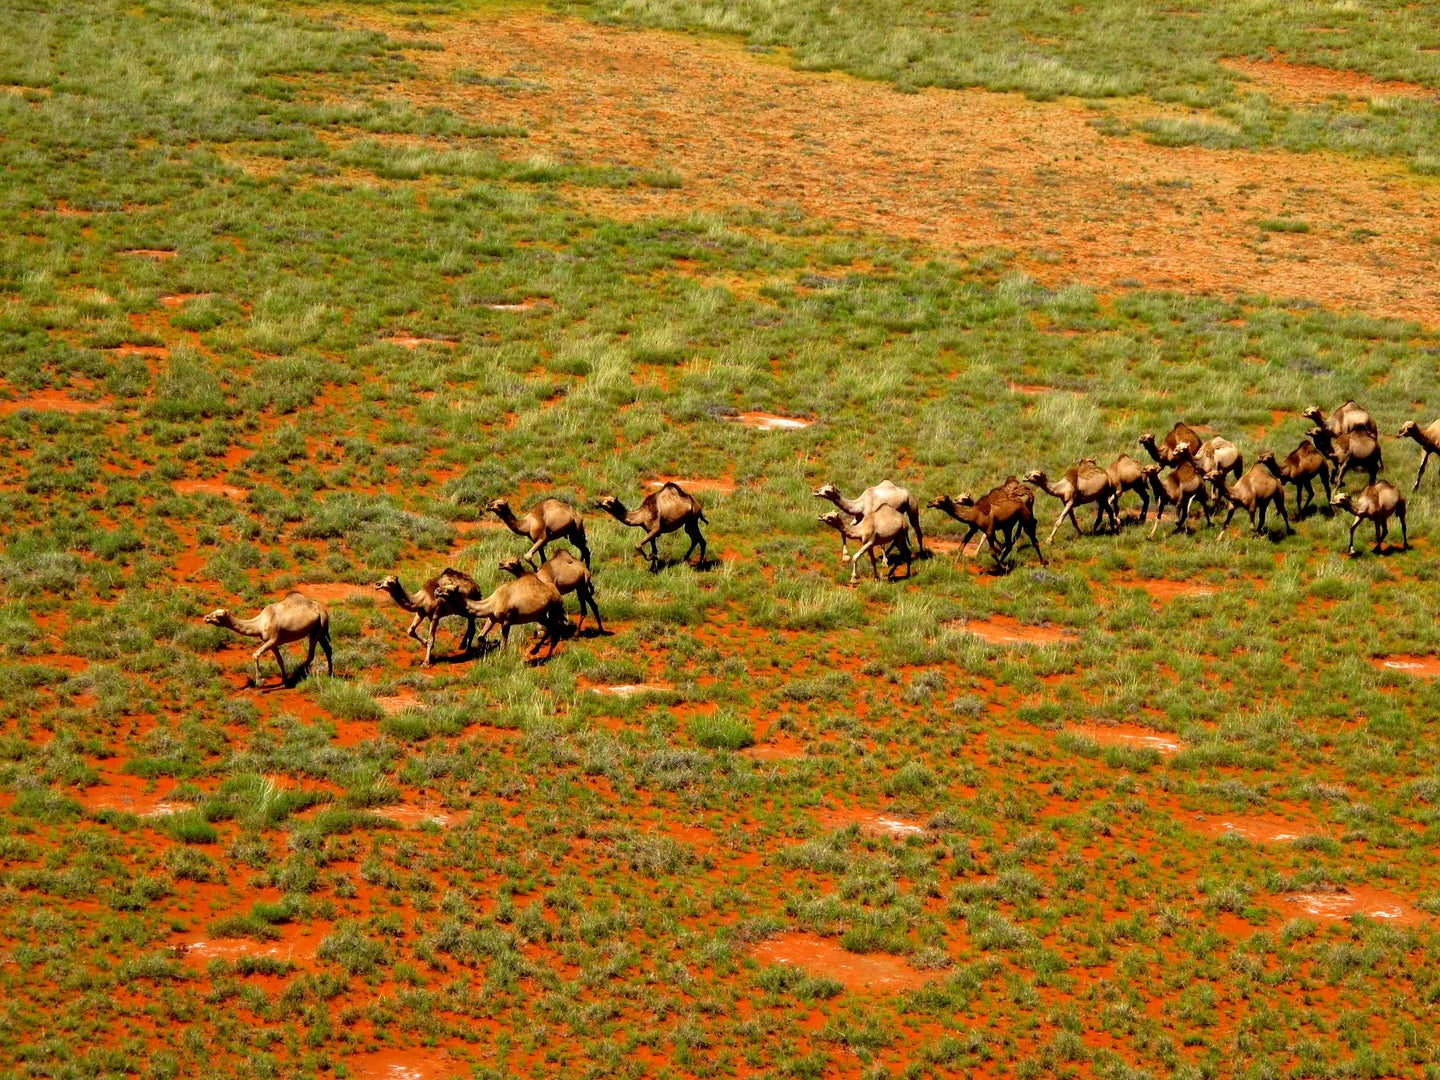 camels crossing red clay and grass terrain